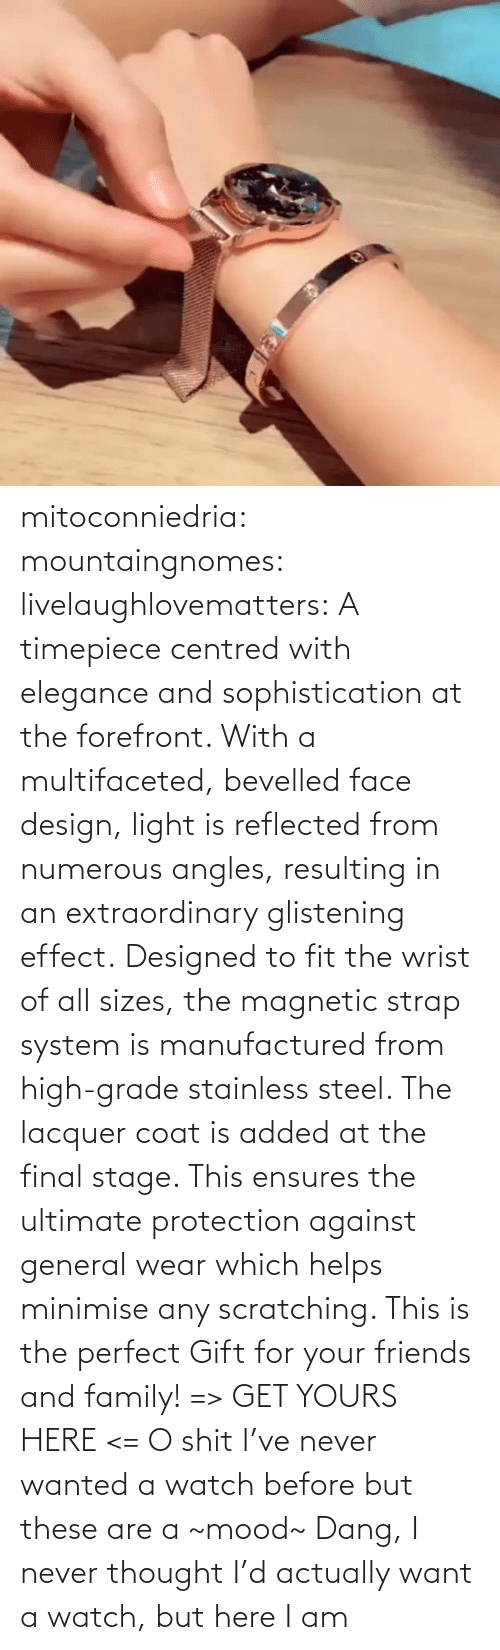 perfect: mitoconniedria: mountaingnomes:   livelaughlovematters:  A timepiece centred with elegance and sophistication at the forefront. With a multifaceted, bevelled face design, light is reflected from numerous angles, resulting in an extraordinary glistening effect. Designed to fit the wrist of all sizes, the magnetic strap system is manufactured from high-grade stainless steel. The lacquer coat is added at the final stage. This ensures the ultimate protection against general wear which helps minimise any scratching. This is the perfect Gift for your friends and family! => GET YOURS HERE <=  O shit I've never wanted a watch before but these are a ~mood~    Dang, I never thought I'd actually want a watch, but here I am